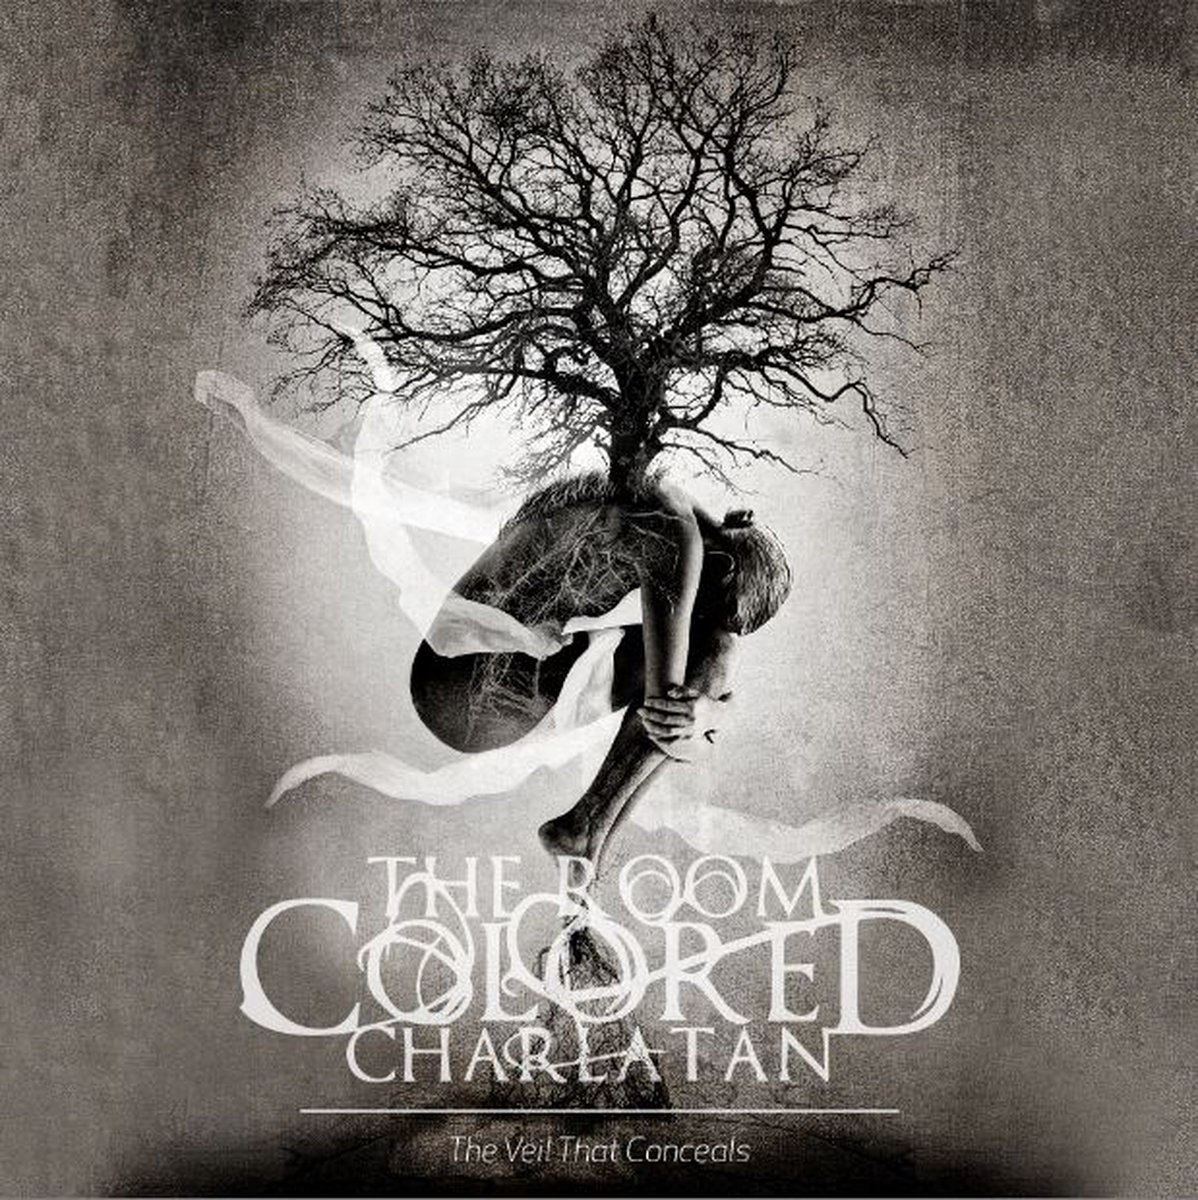 The Room Colored Charlatan - The Veil That Conceals (2016)